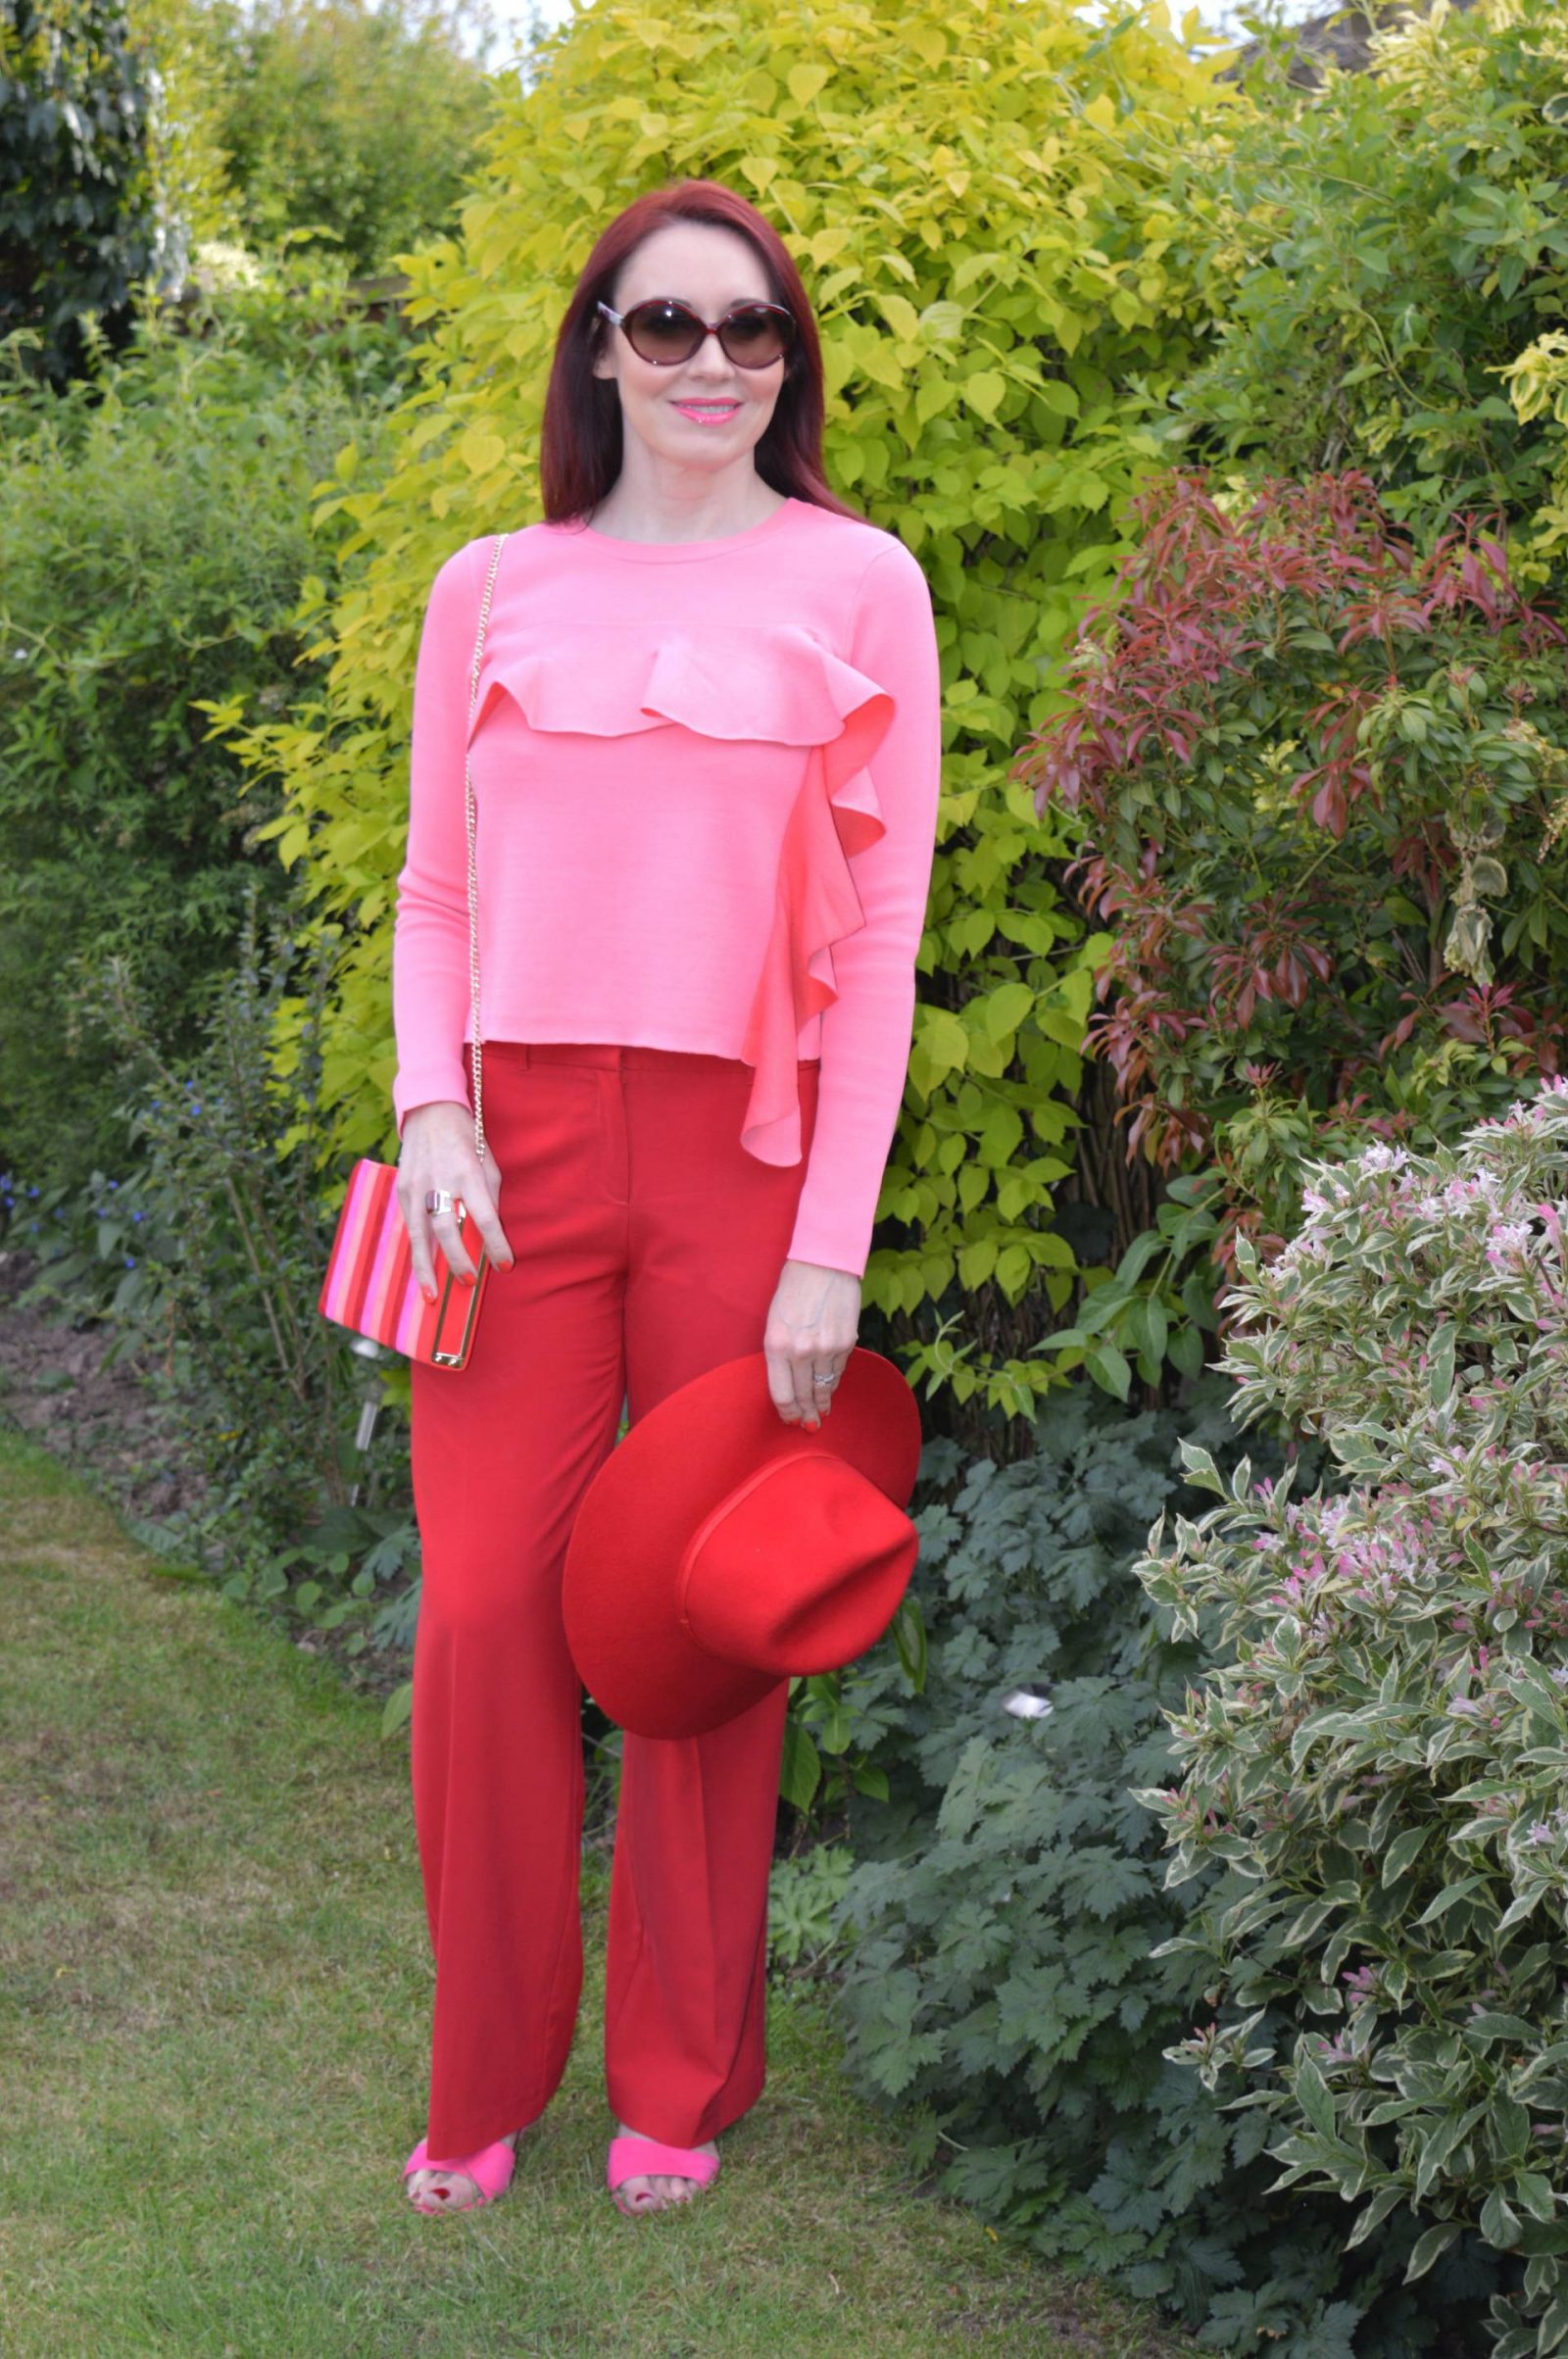 Lotus wedge sandals,striped clutch bag, Asos pink ruffle jumper